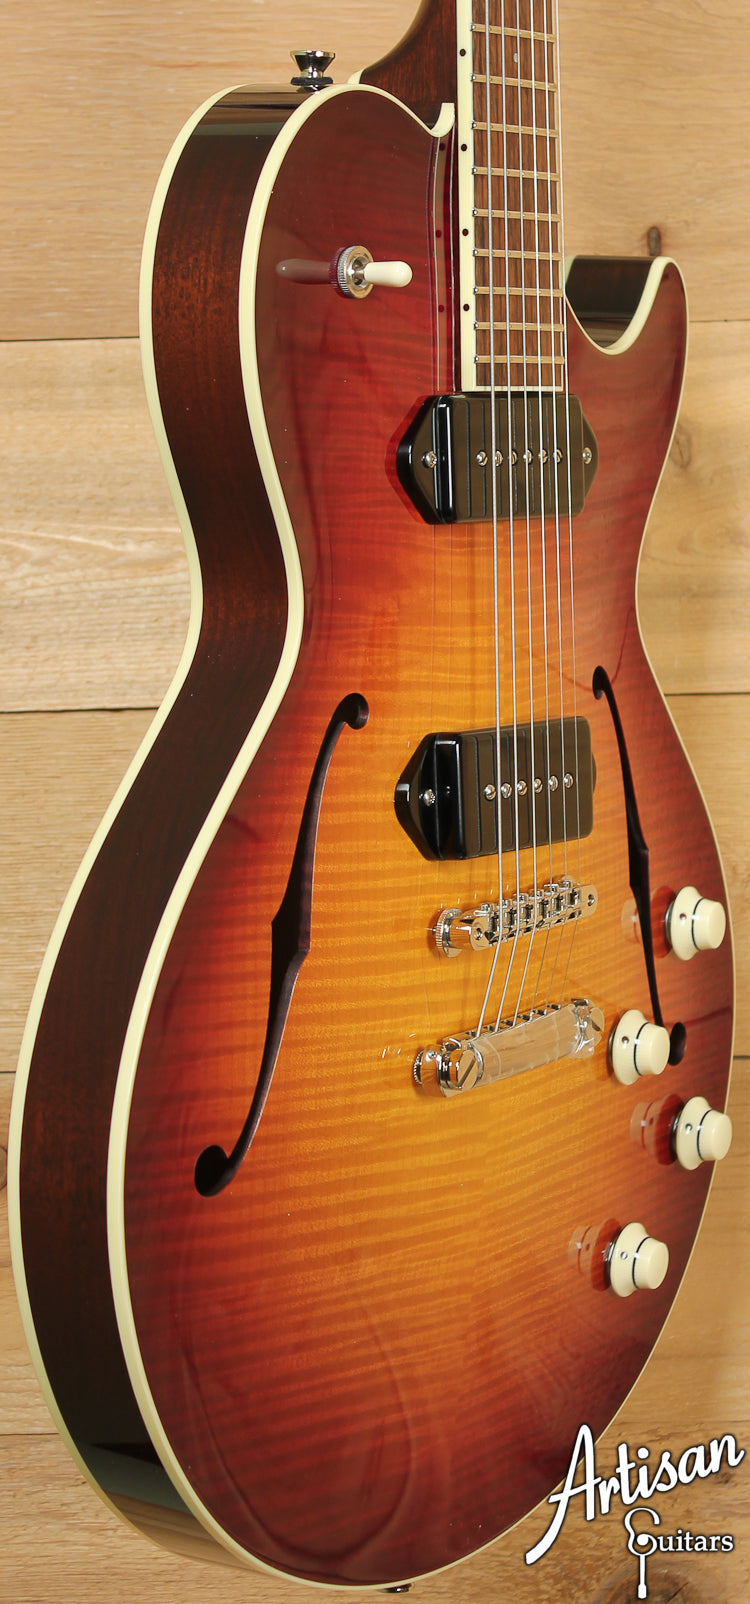 Collings SoCo Deluxe Tobacco Sunburst Flame Top P90 Dogear Pickups ID-7192 - Artisan Guitars